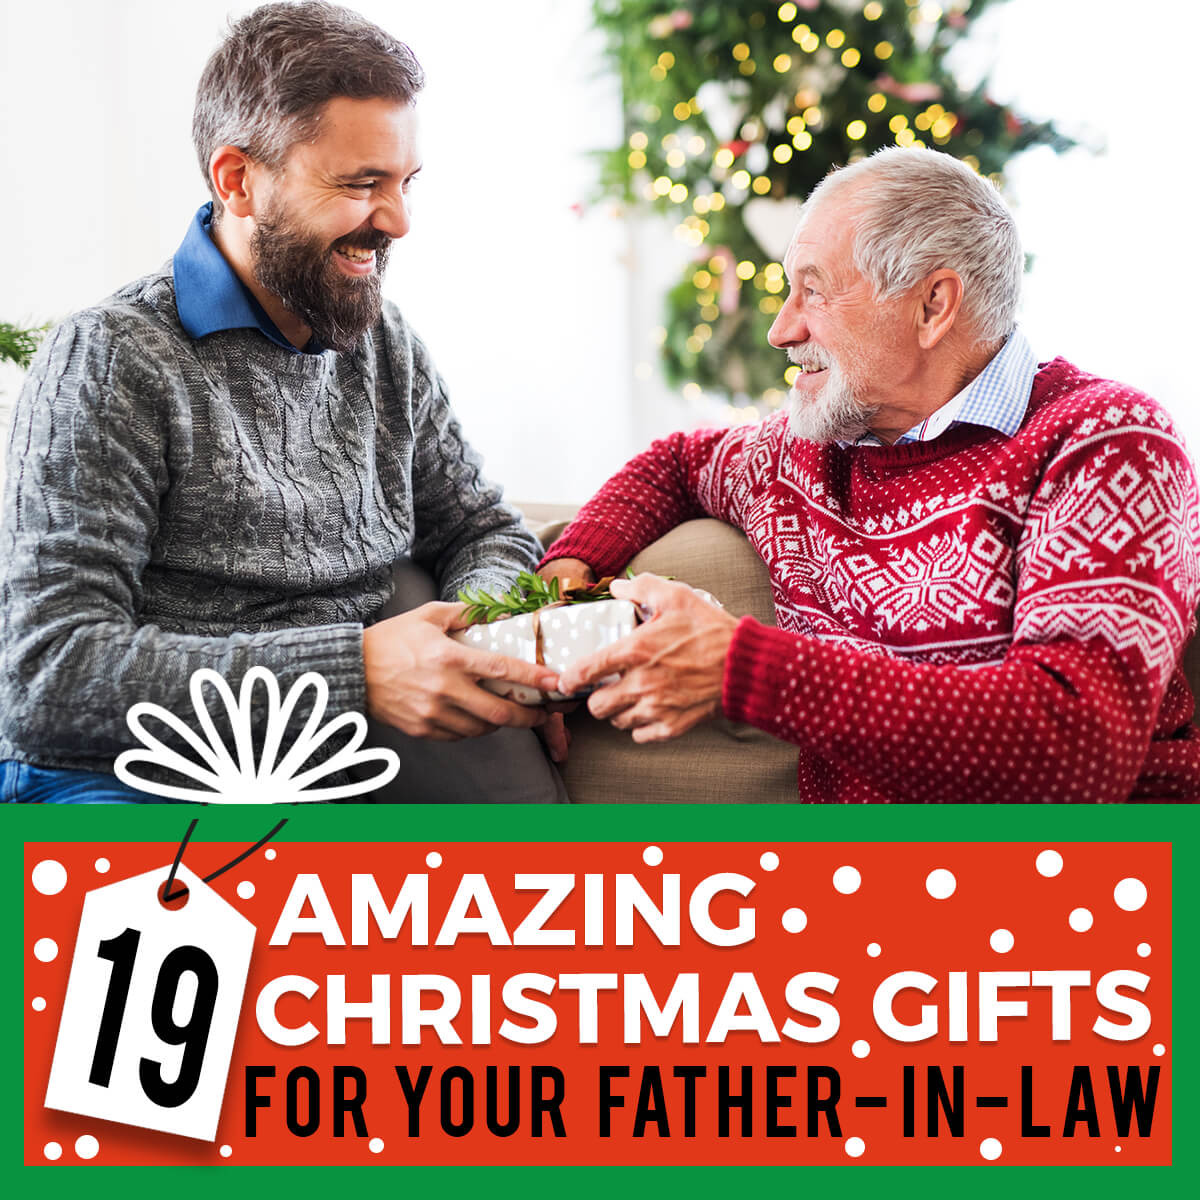 Christmas Gift Ideas For Father In Law  19 Amazing Christmas Gifts for your Father In Law